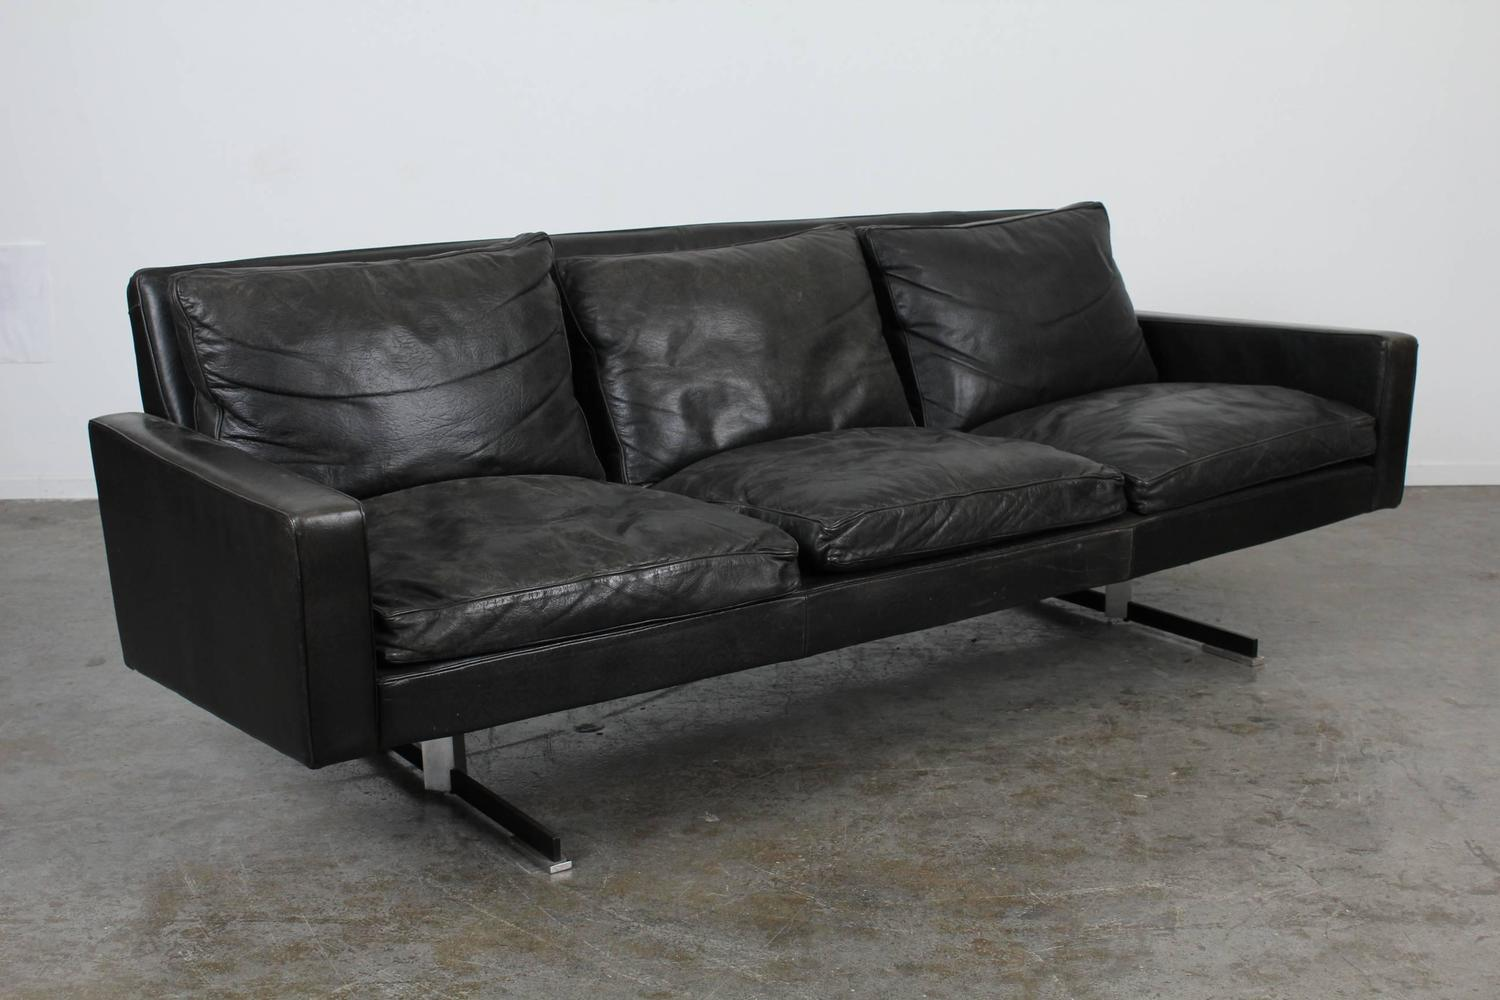 mid century modern black leather sofa with chrome legs for sale at 1stdibs. Black Bedroom Furniture Sets. Home Design Ideas